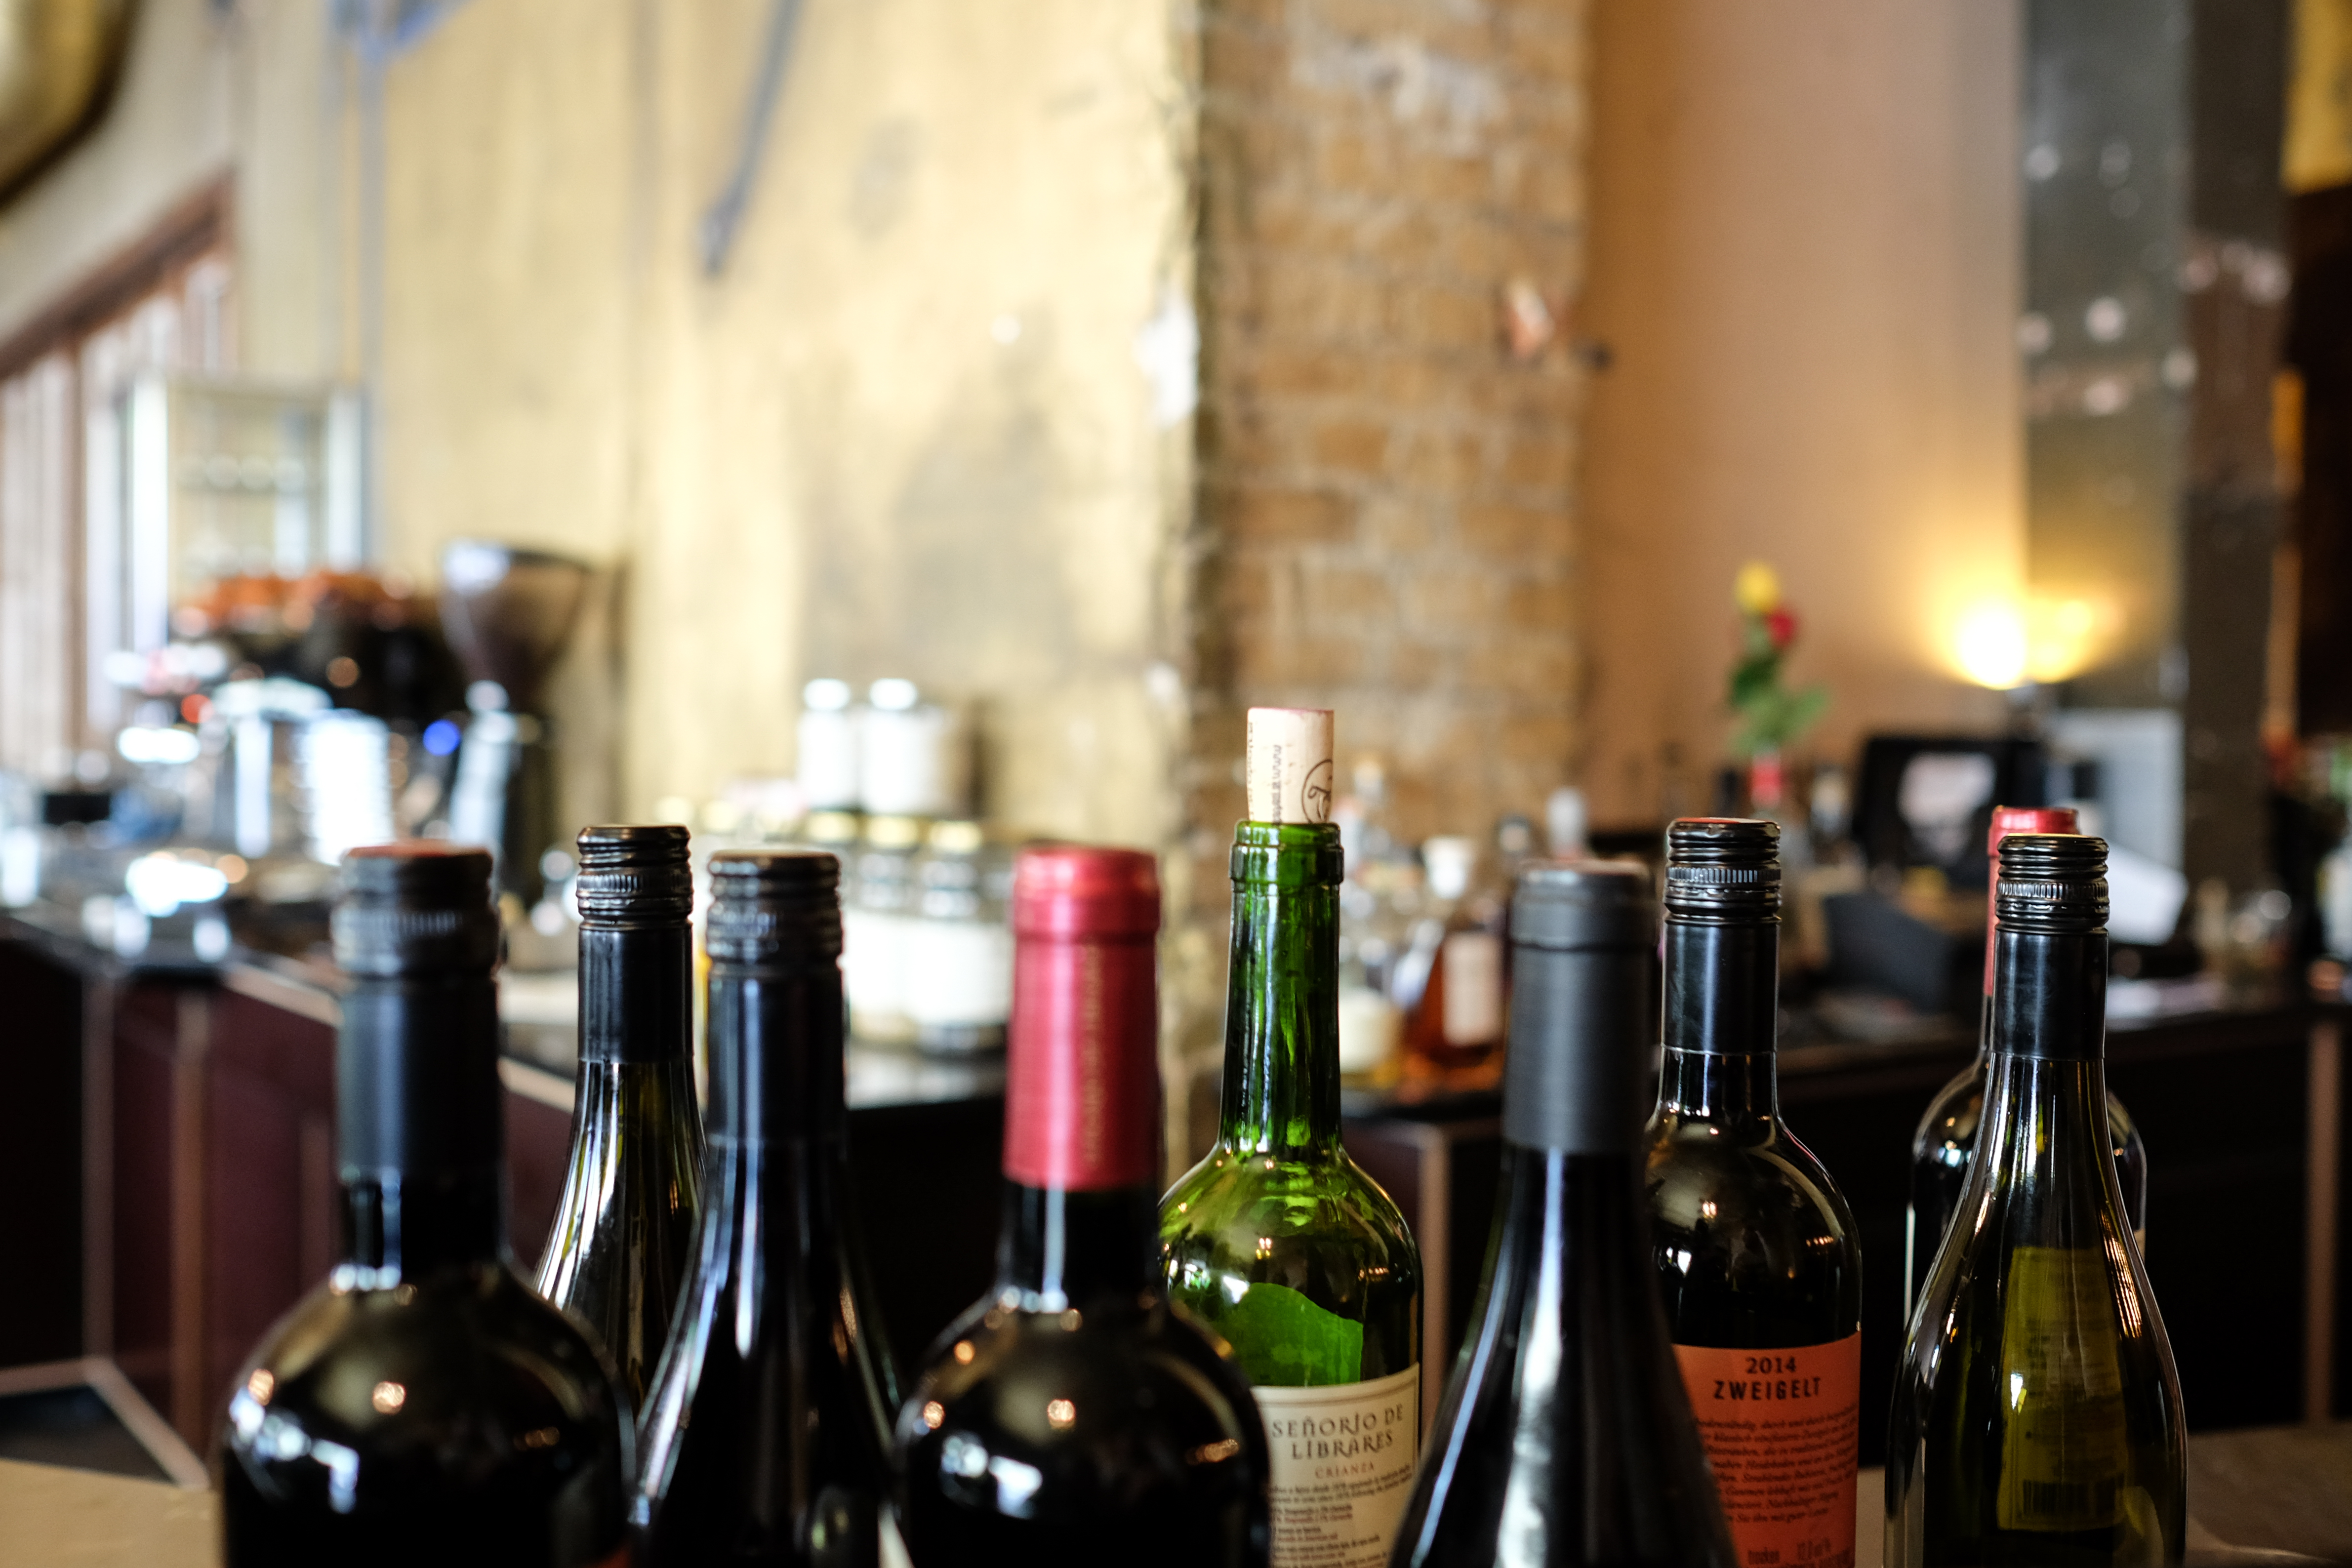 And now for the (very) good news. Wine is tax deductible